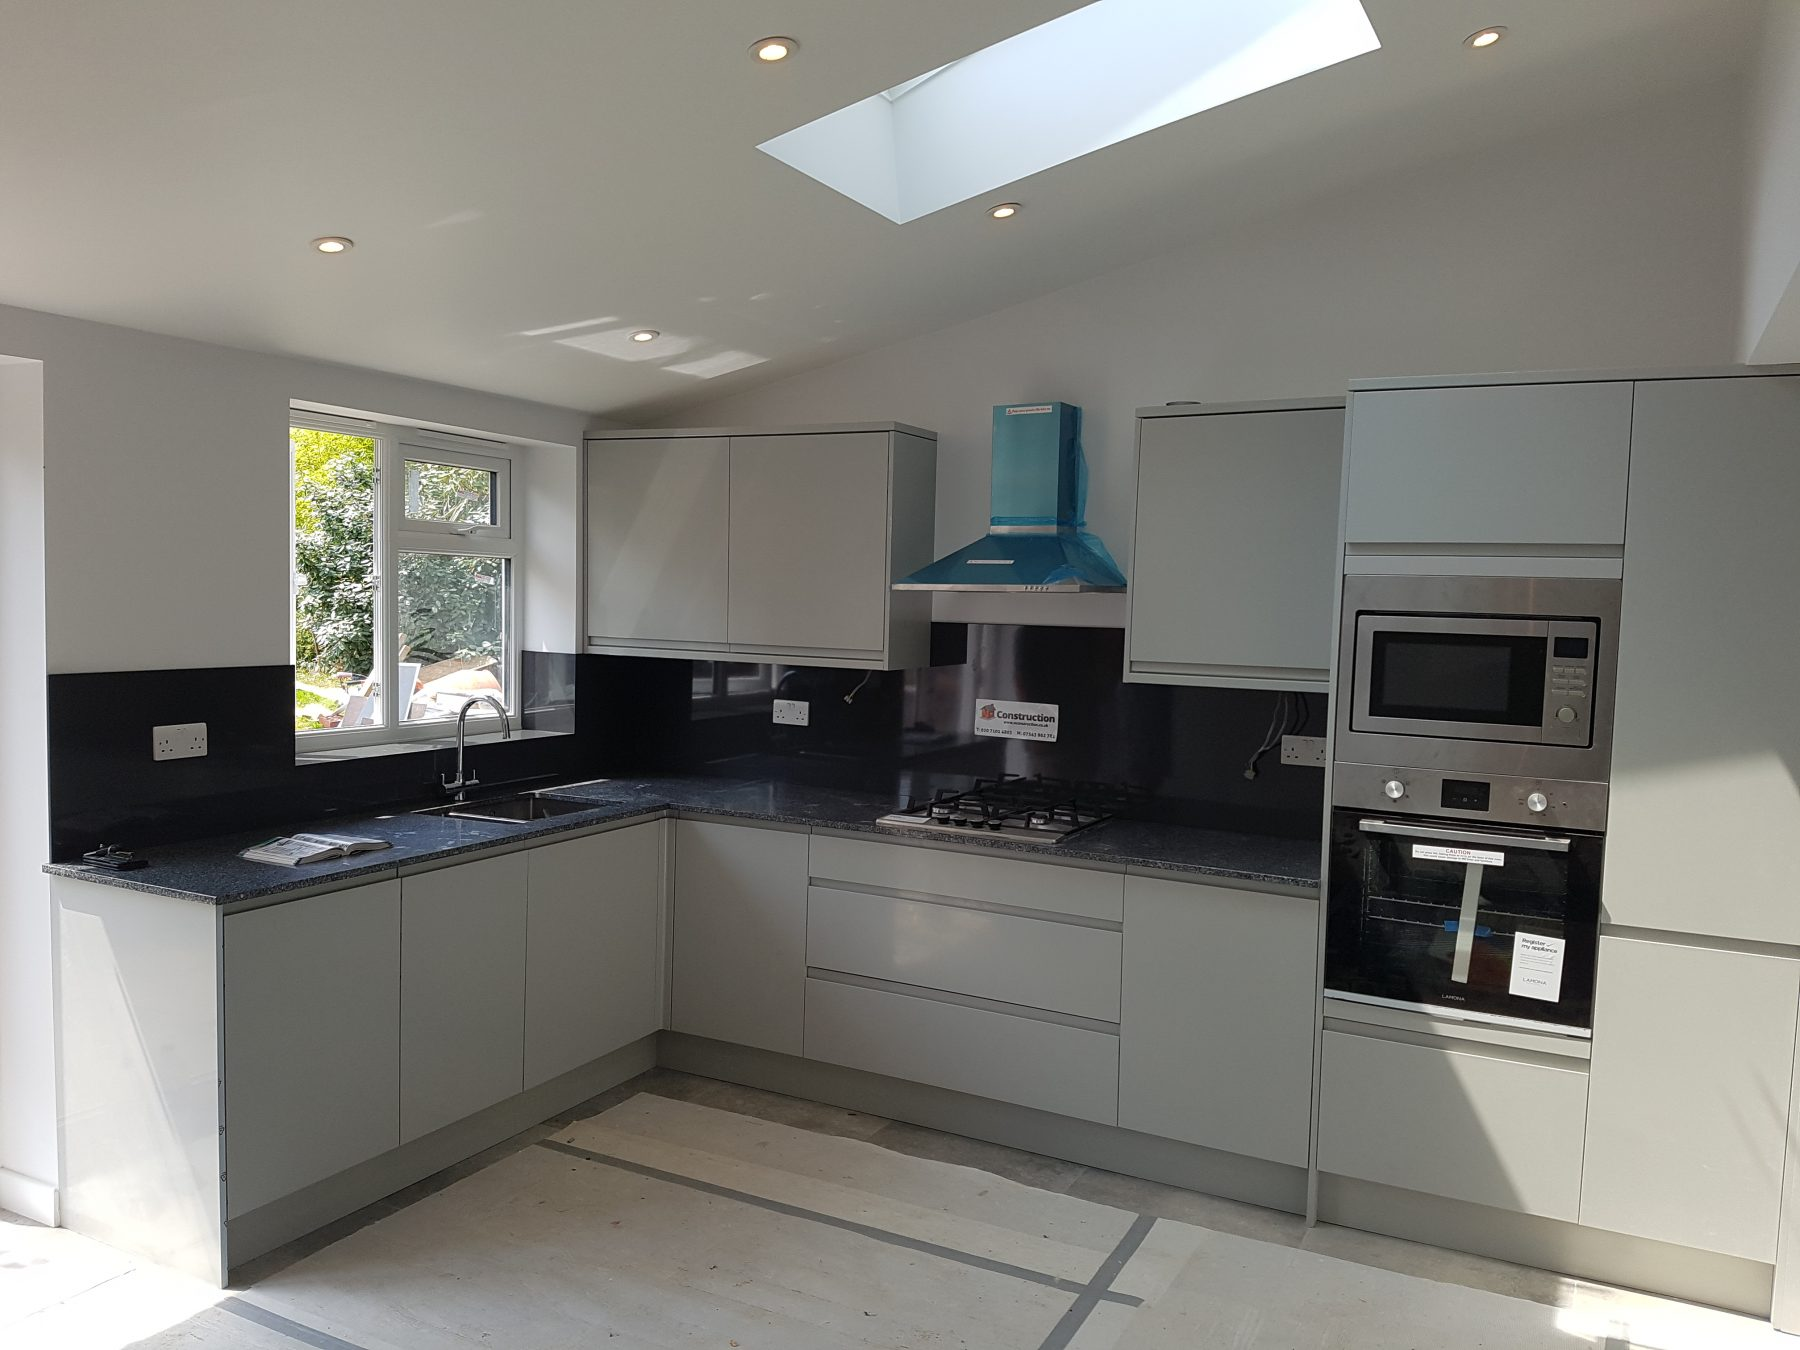 kitchen designers in london. Kitchen Fitters Designers In South West London N Construction Ltd Kitchen Designers And Fitters London  Luxury Kitchens